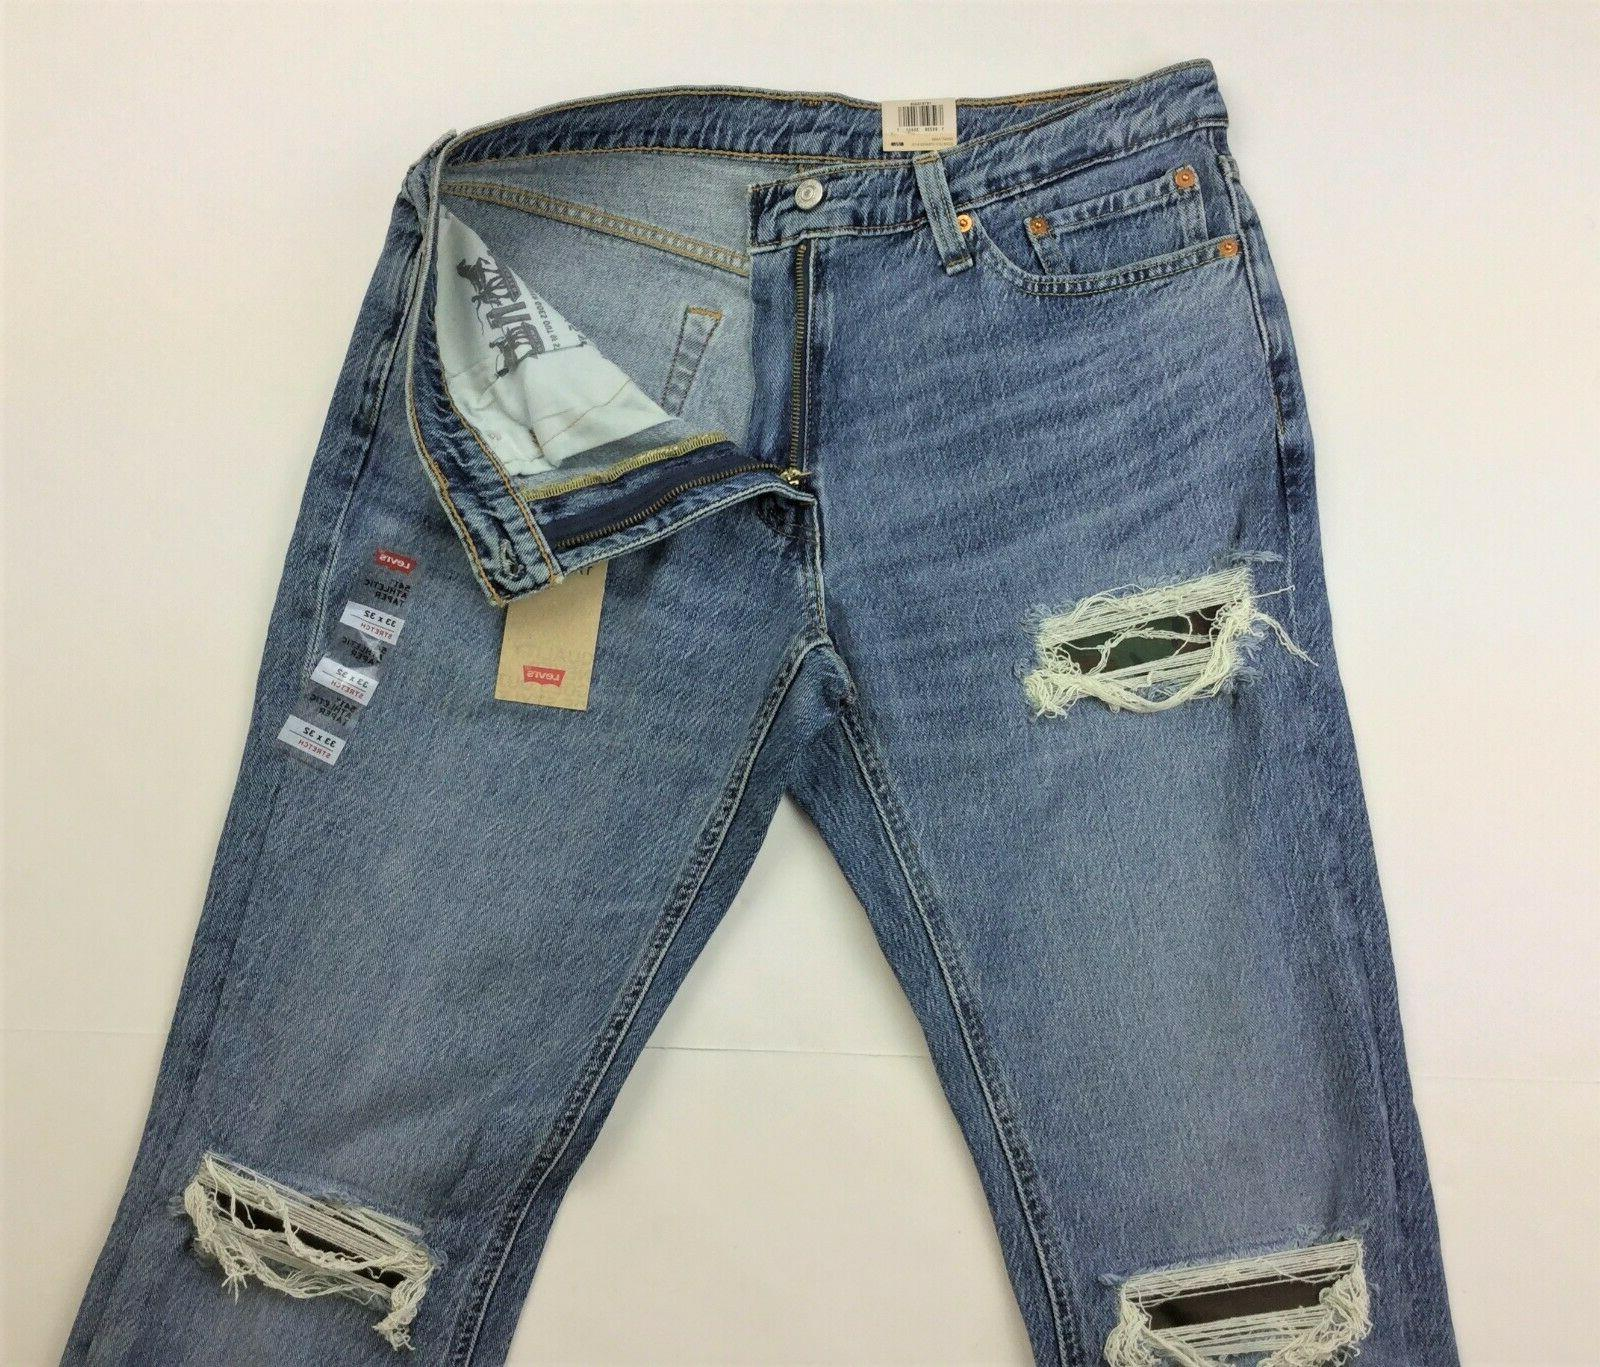 Levi's Levis 541 Athletic Military Camo Patch Distressed